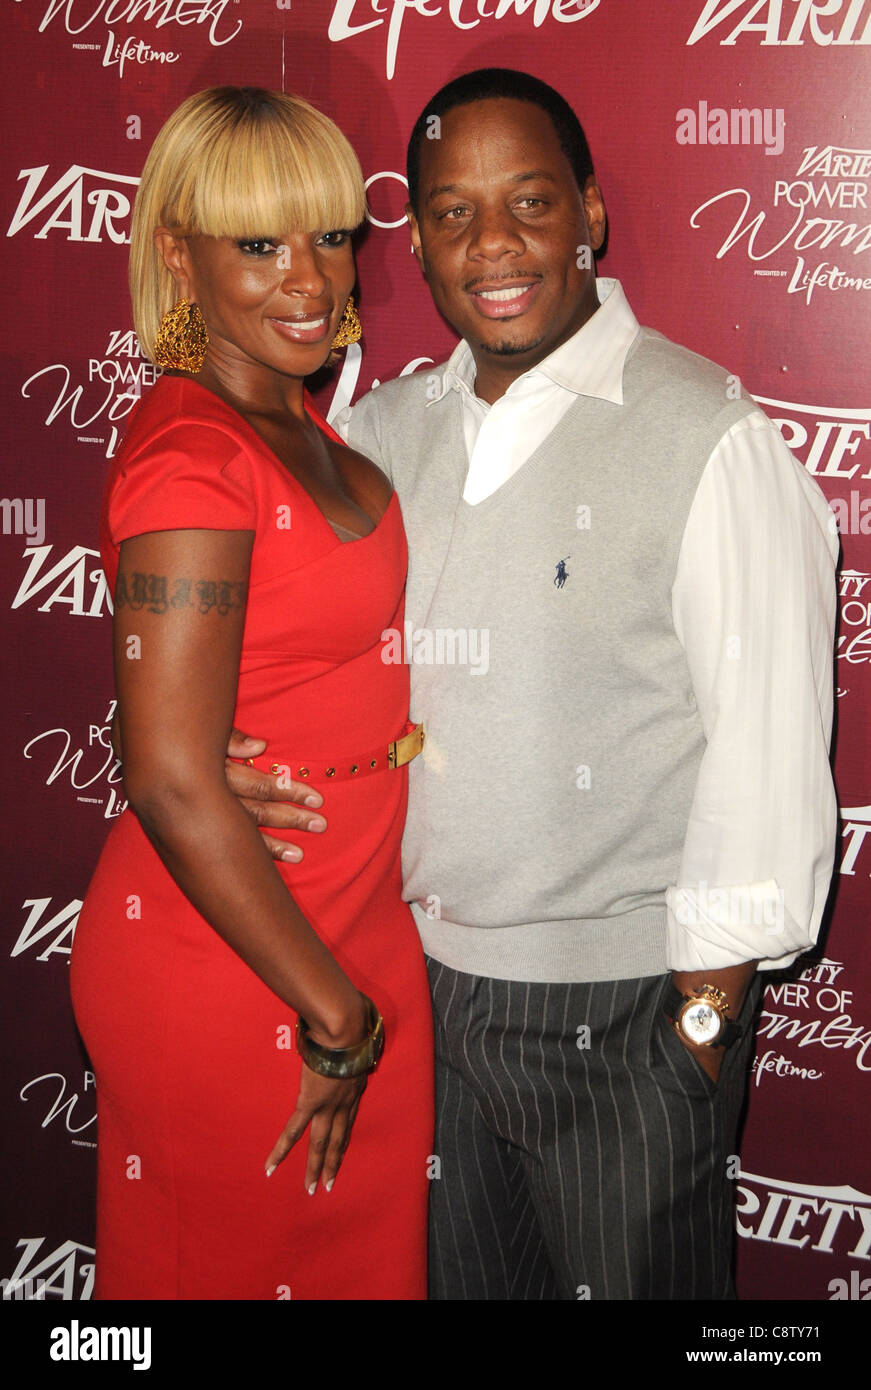 Mary J. Blige at arrivals for Variety's 3rd Annual Power of Women Luncheon, Beverly Wilshire Four Seasons Hotel, - Stock Image